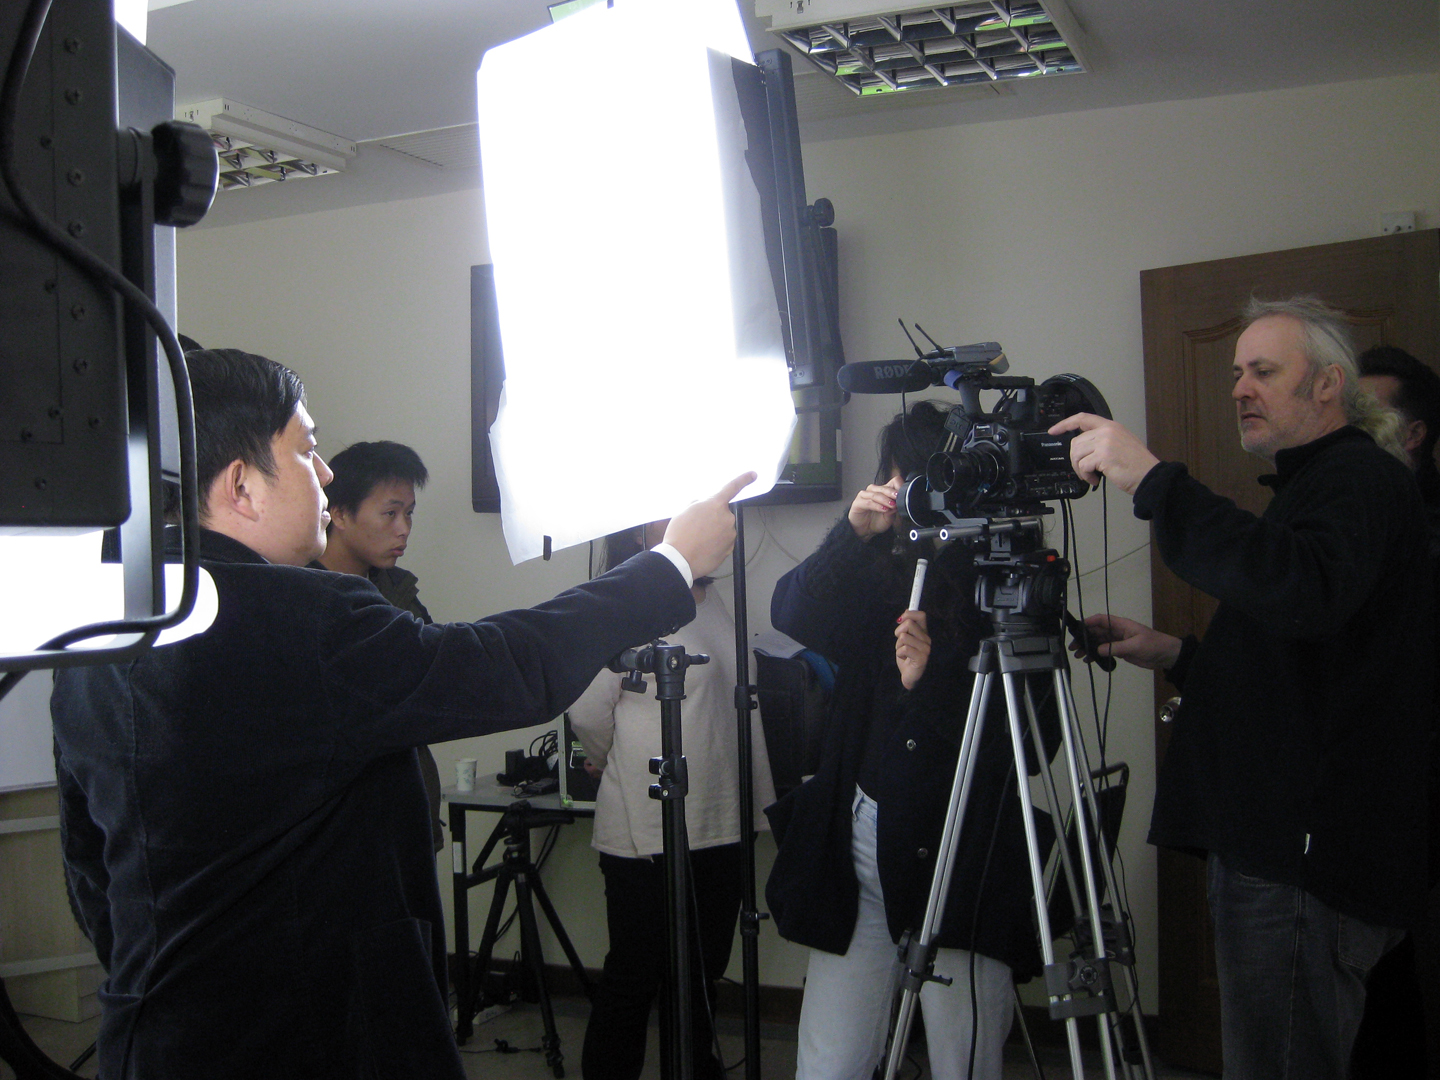 Light set up and shooting of the TVC scene.